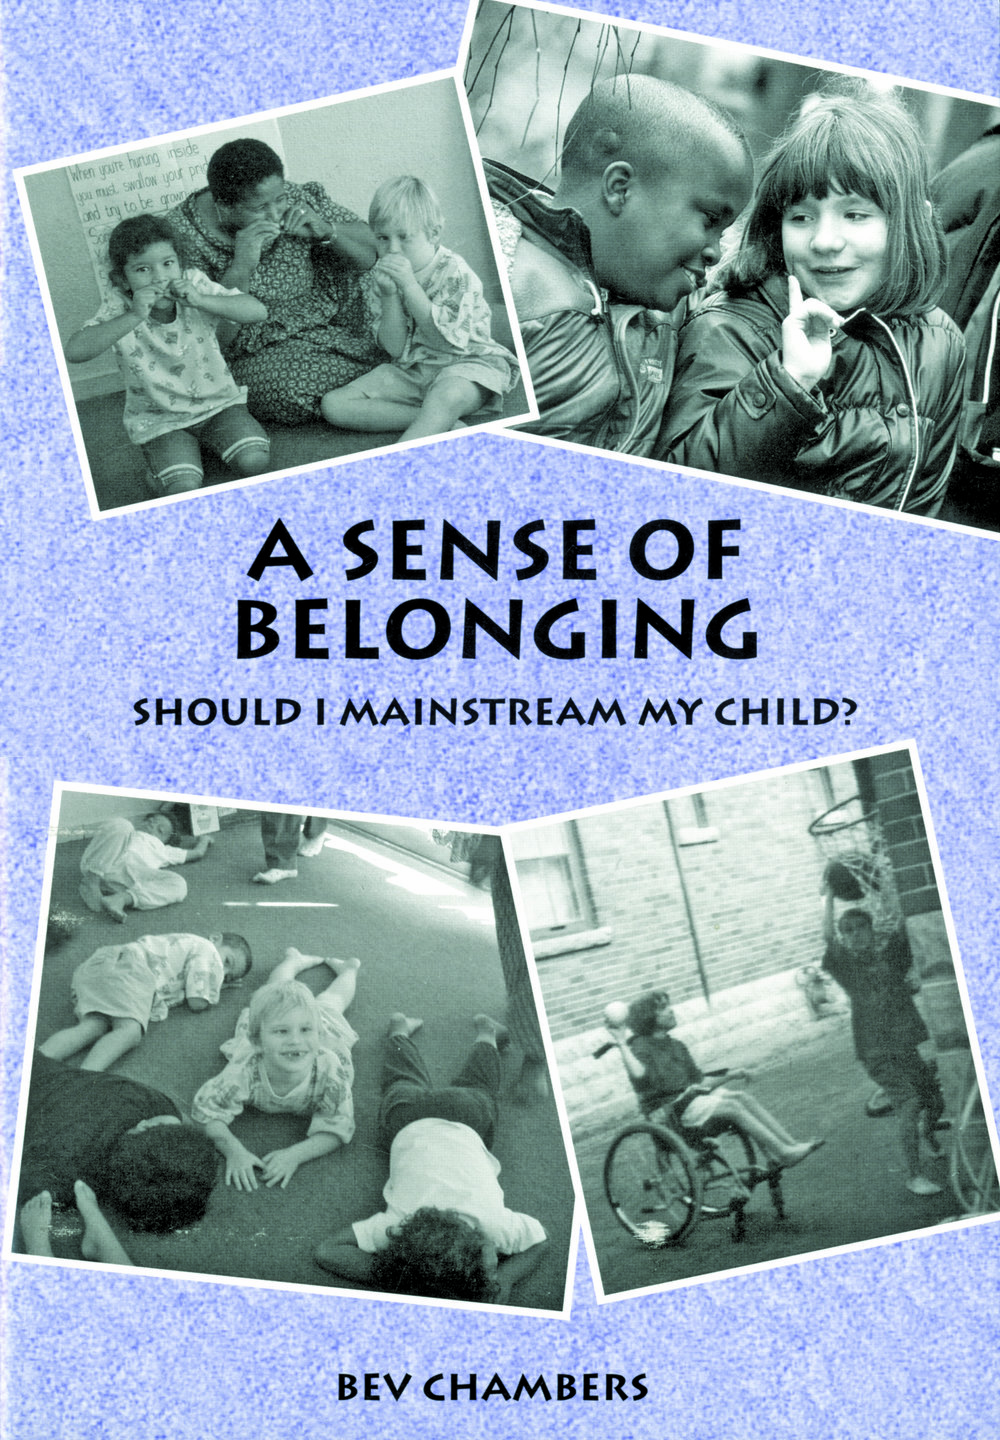 A Sense of Belonging - Bev Chambers